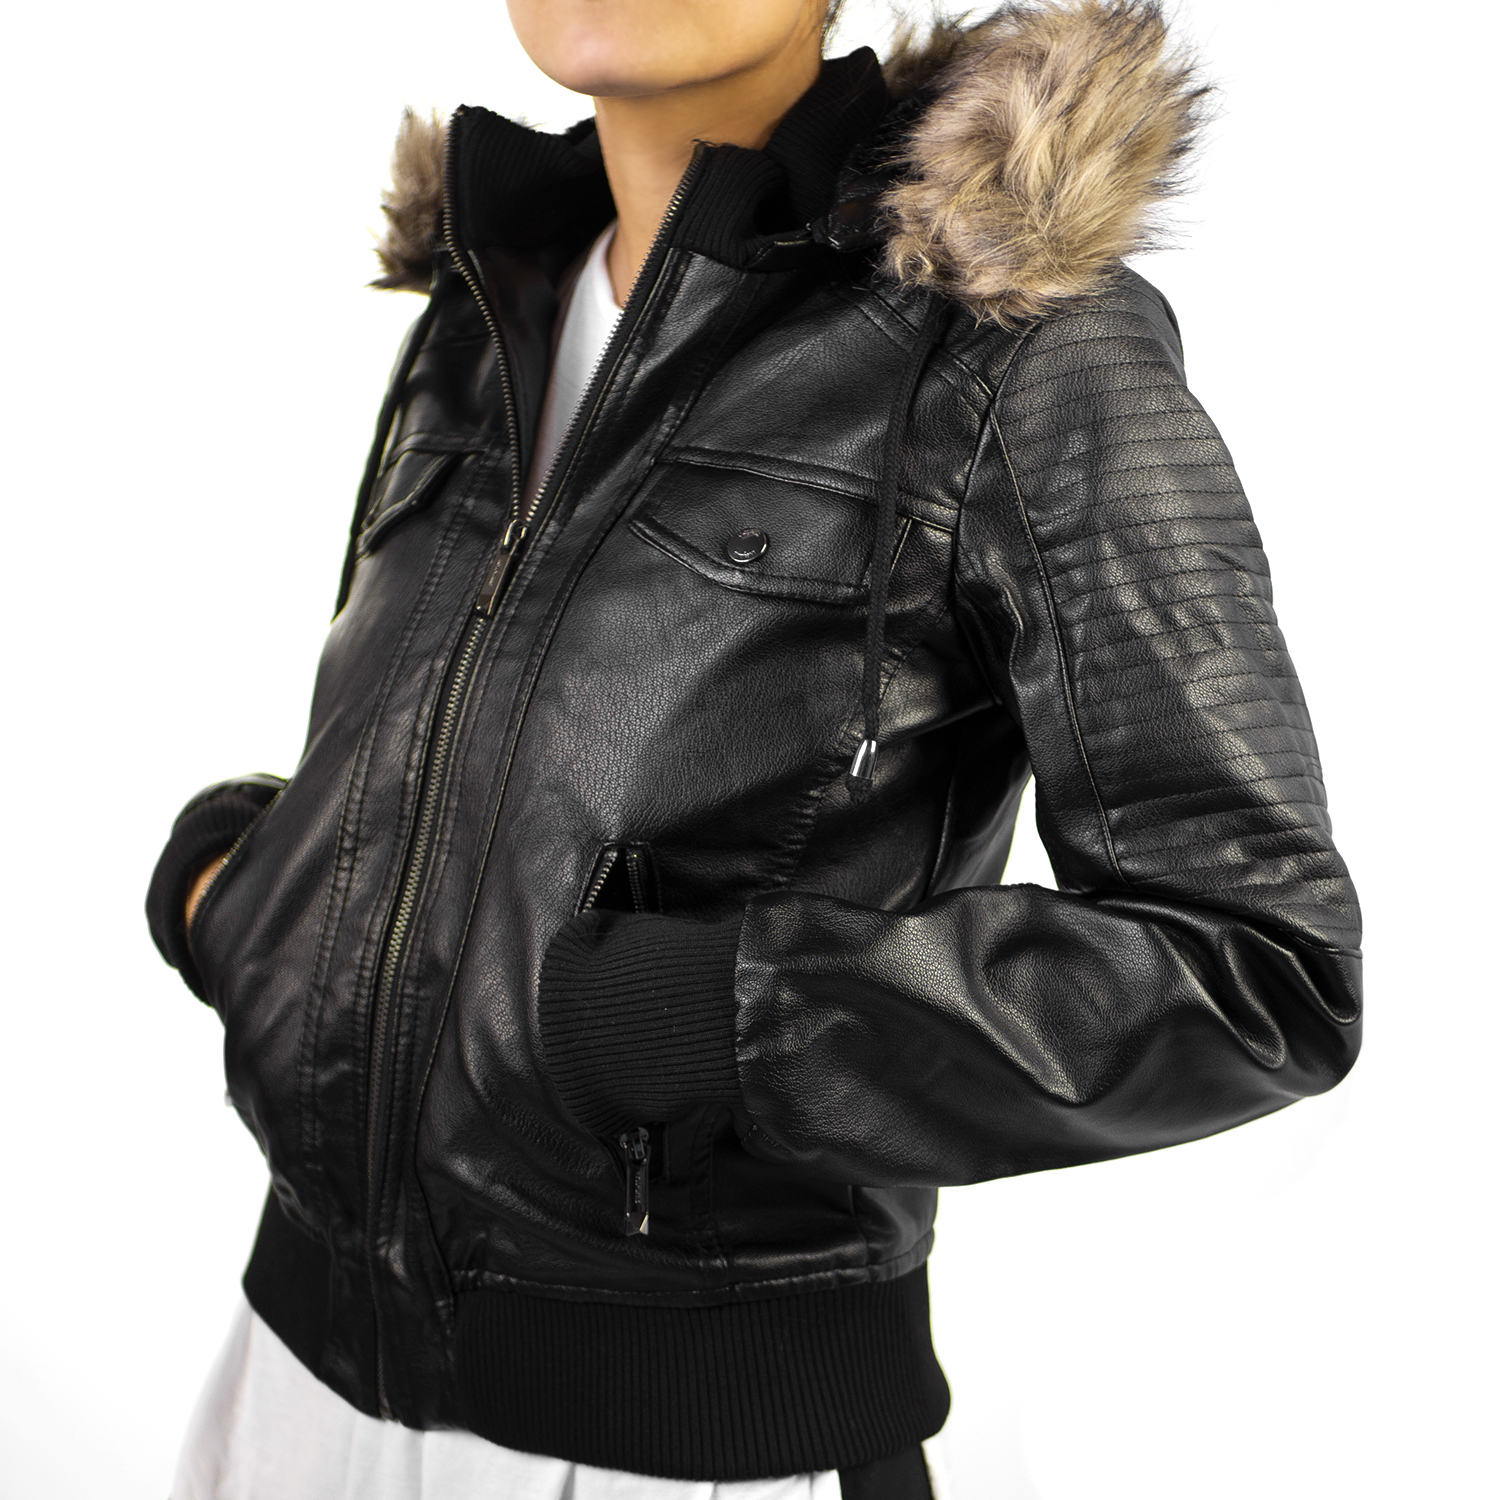 Altatac Women's Faux Leather/Faux Fur Motorcycle Jacket with Hood   eBay